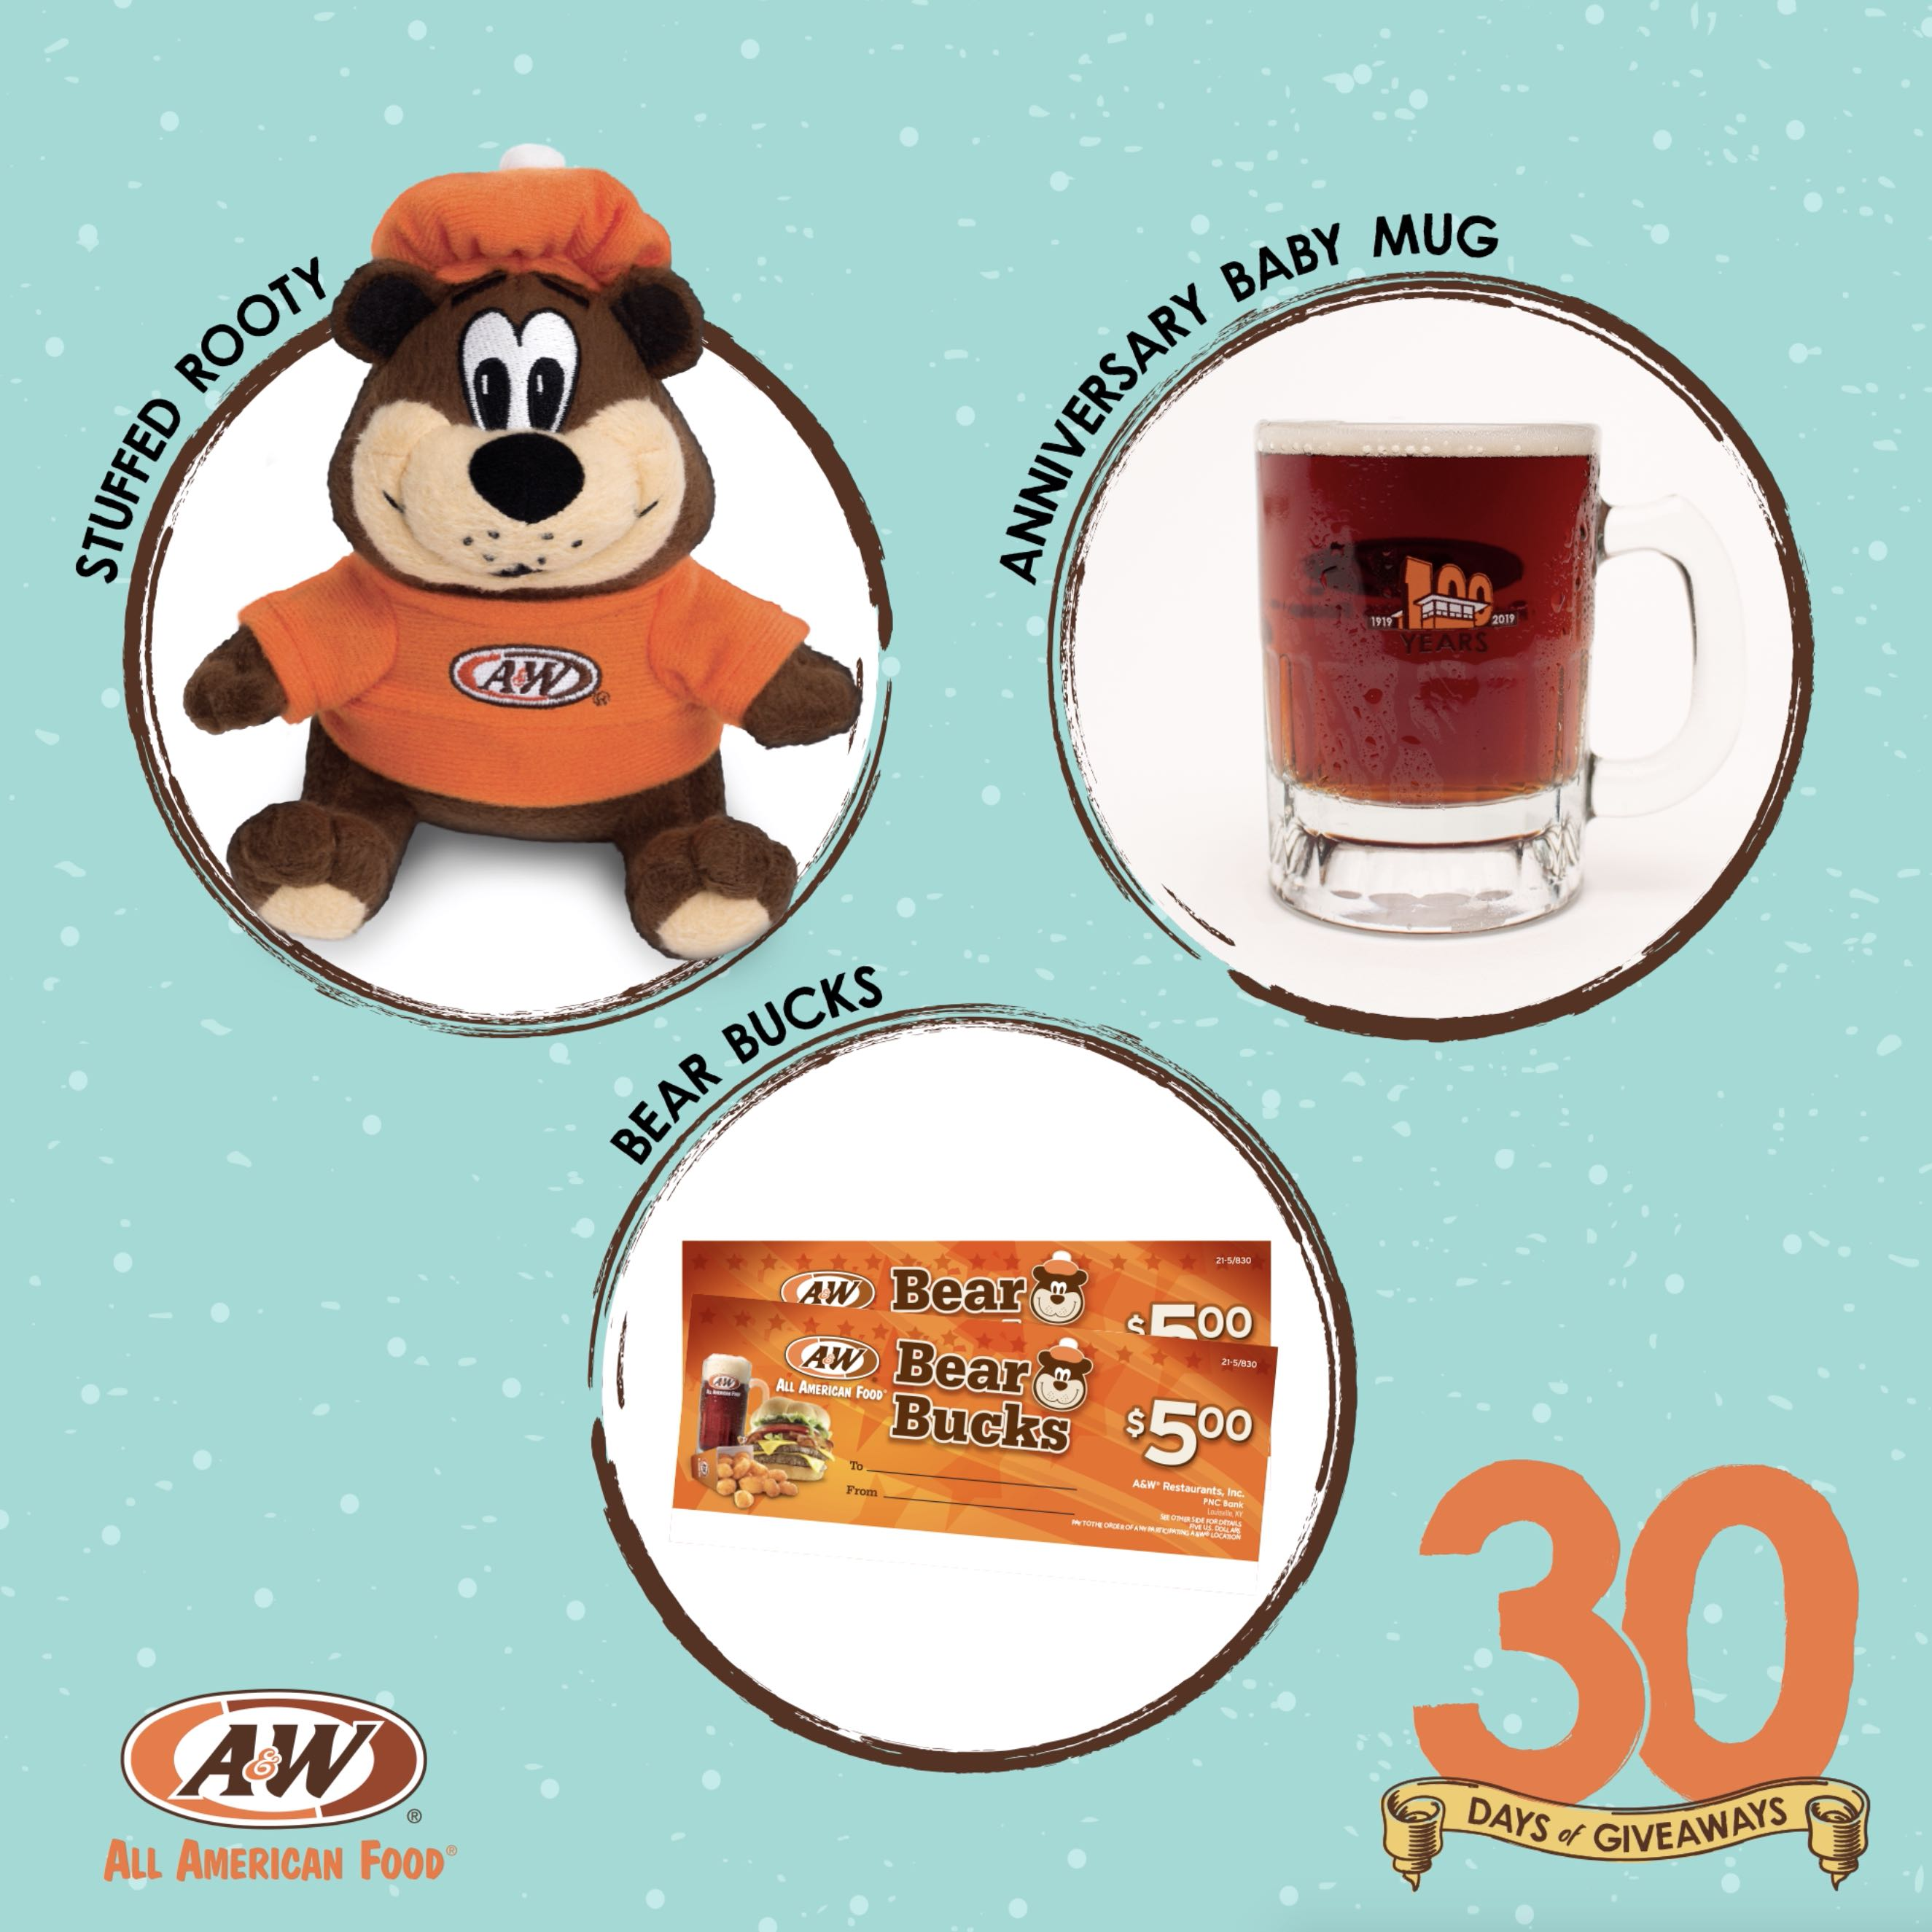 Bear Bucks, Stuffed Rooty, and 100th Anniversary Baby Mug on a blue background. 30 Days of Giveaways logo is in the bottom right on the image. A&W Restaurants logo is on the bottom right side of the image.